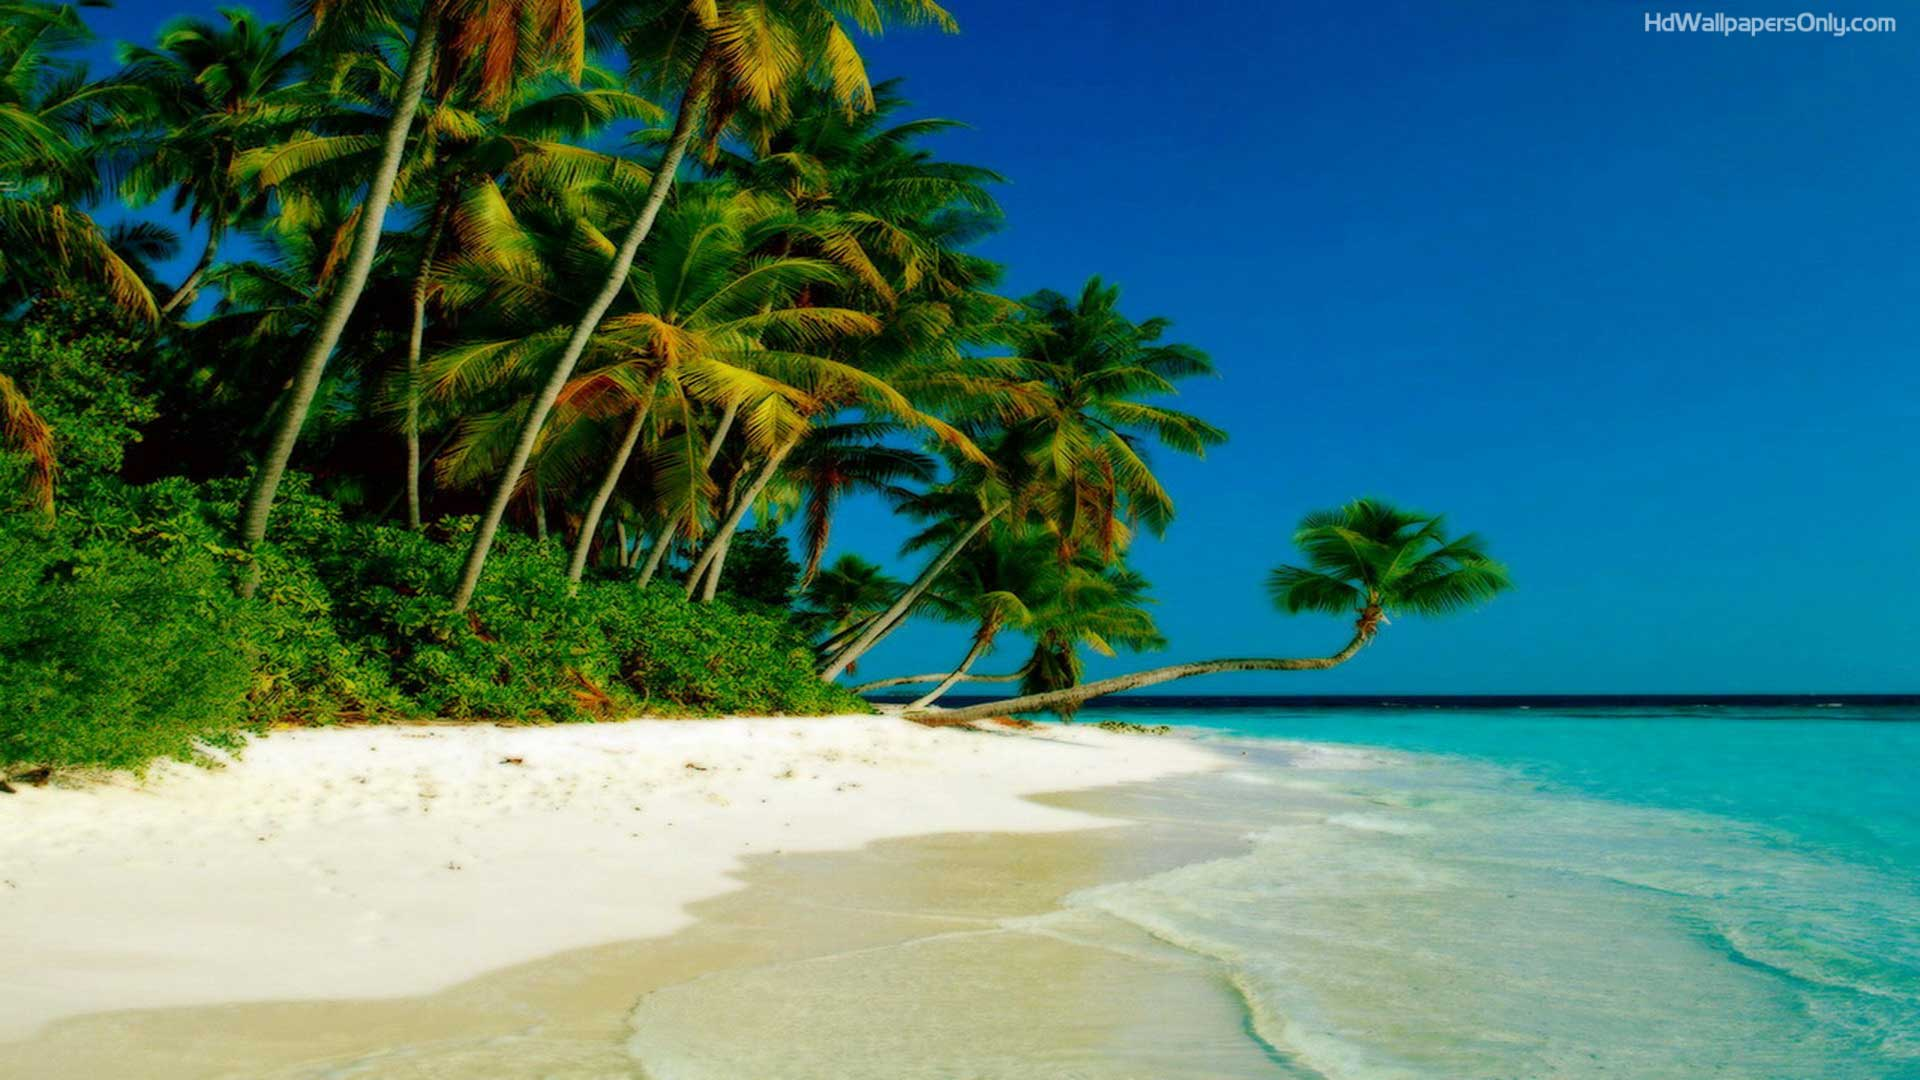 Beach Wallpapers 1920 X 1080 Wide Screen Wallpaper 1080p 1920x1080